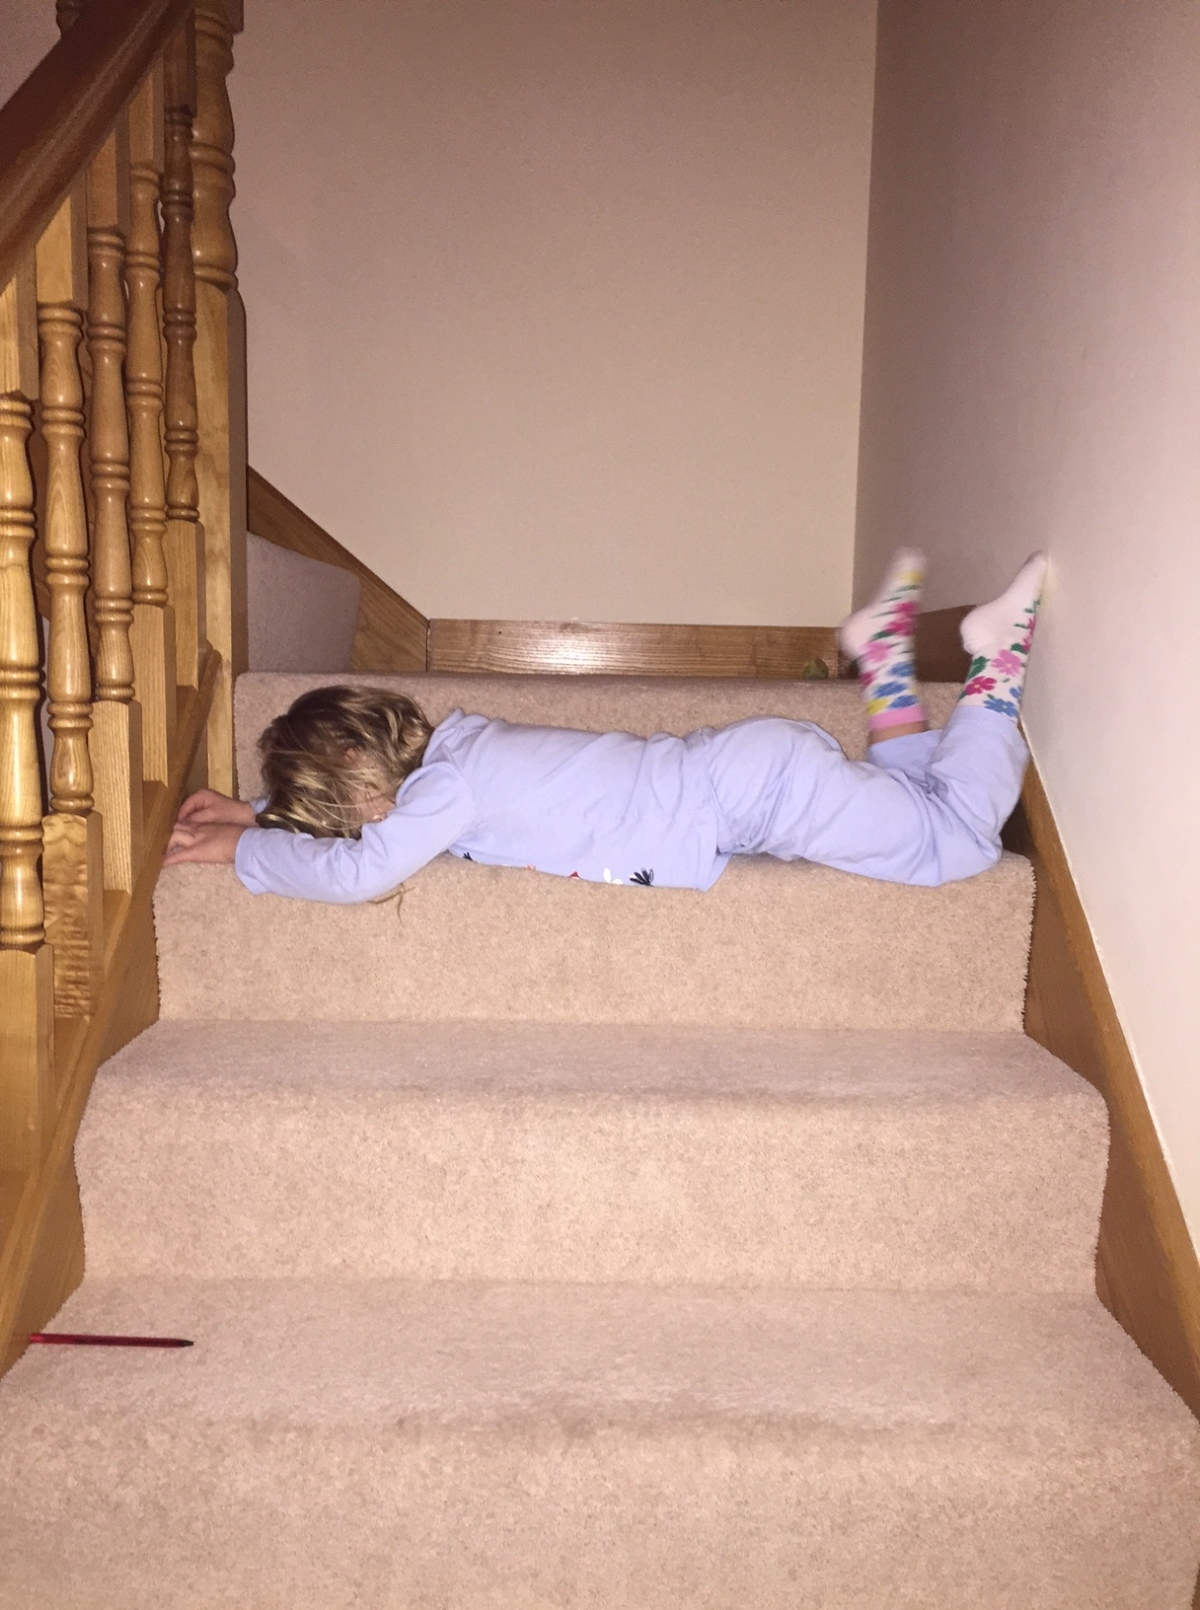 Stairs strop